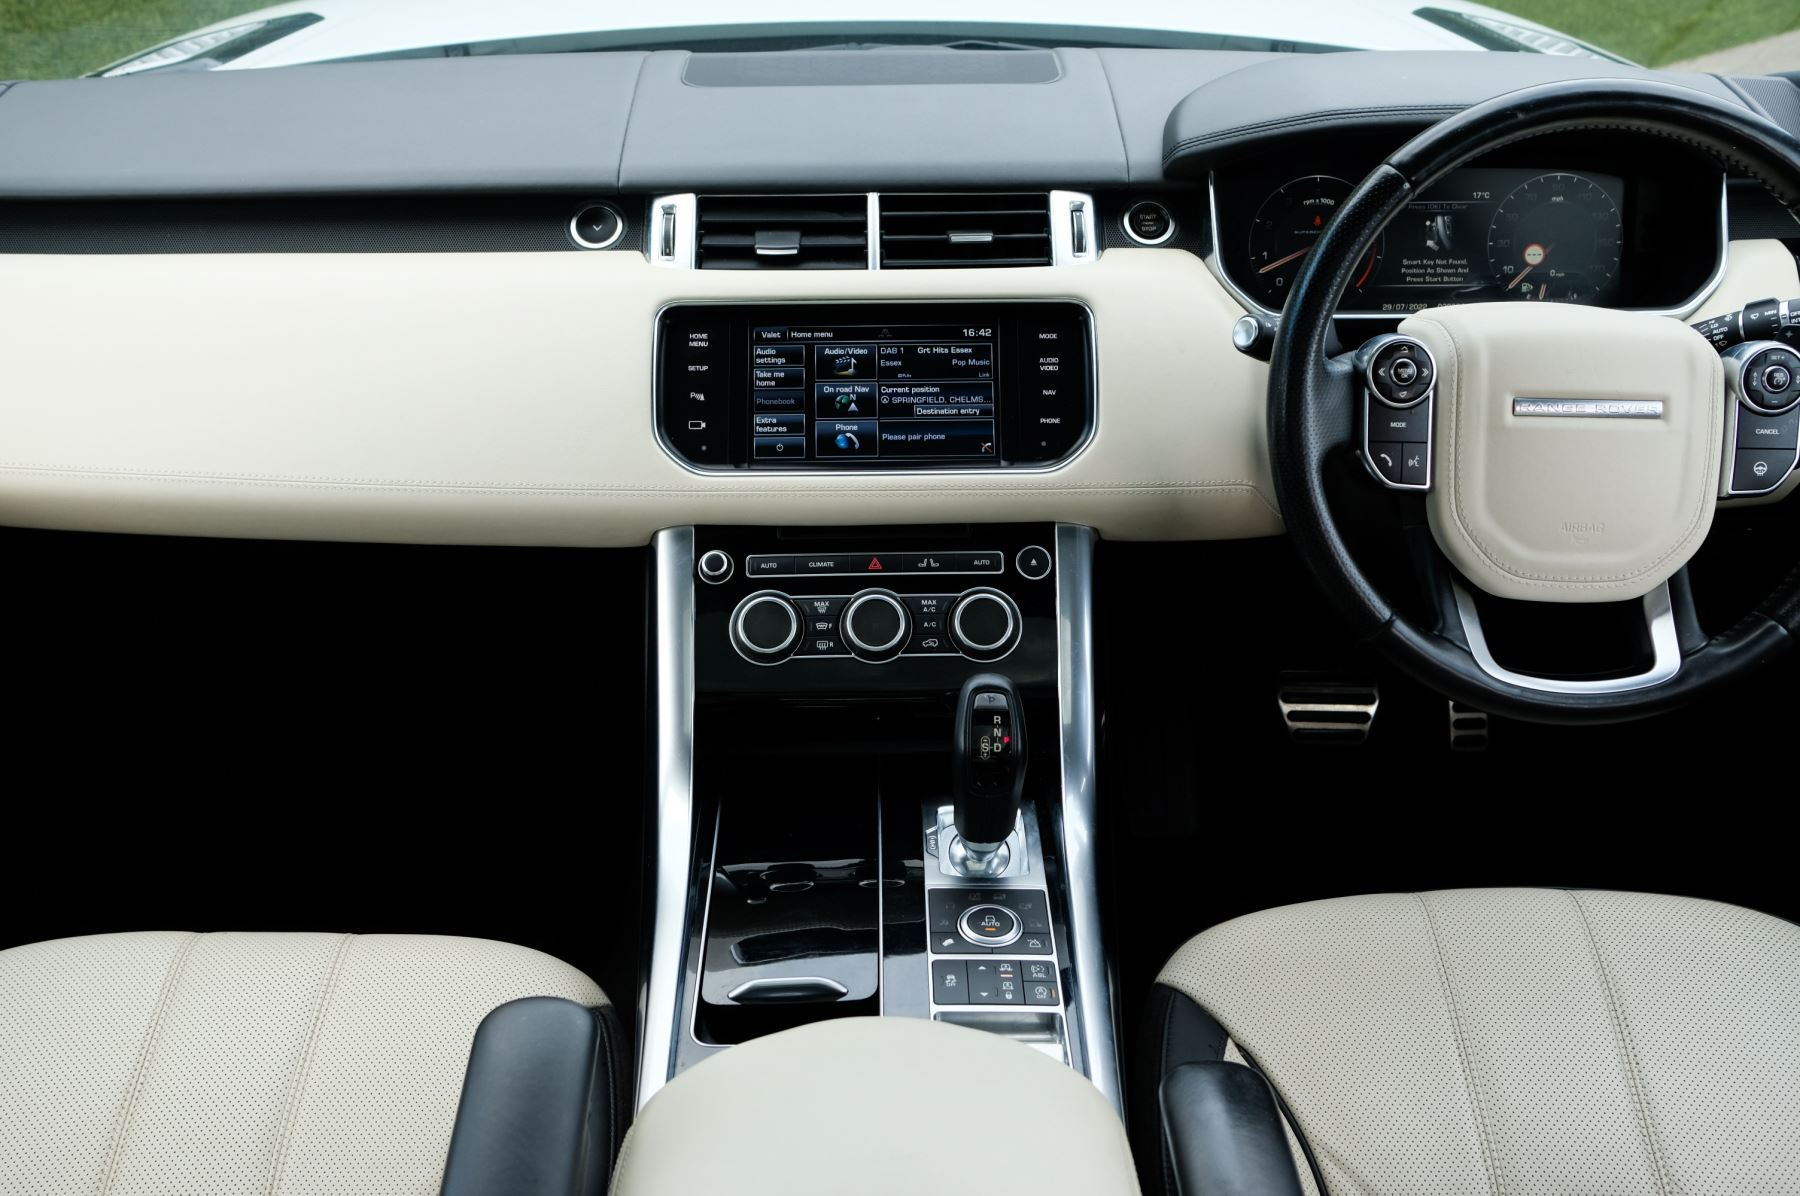 Land Rover Range Rover Sport 5.0 V8 S/C Autobiography Dynamic - 22 Inch Alloy Wheels - LED Signature Lights - 360 Camera image 19